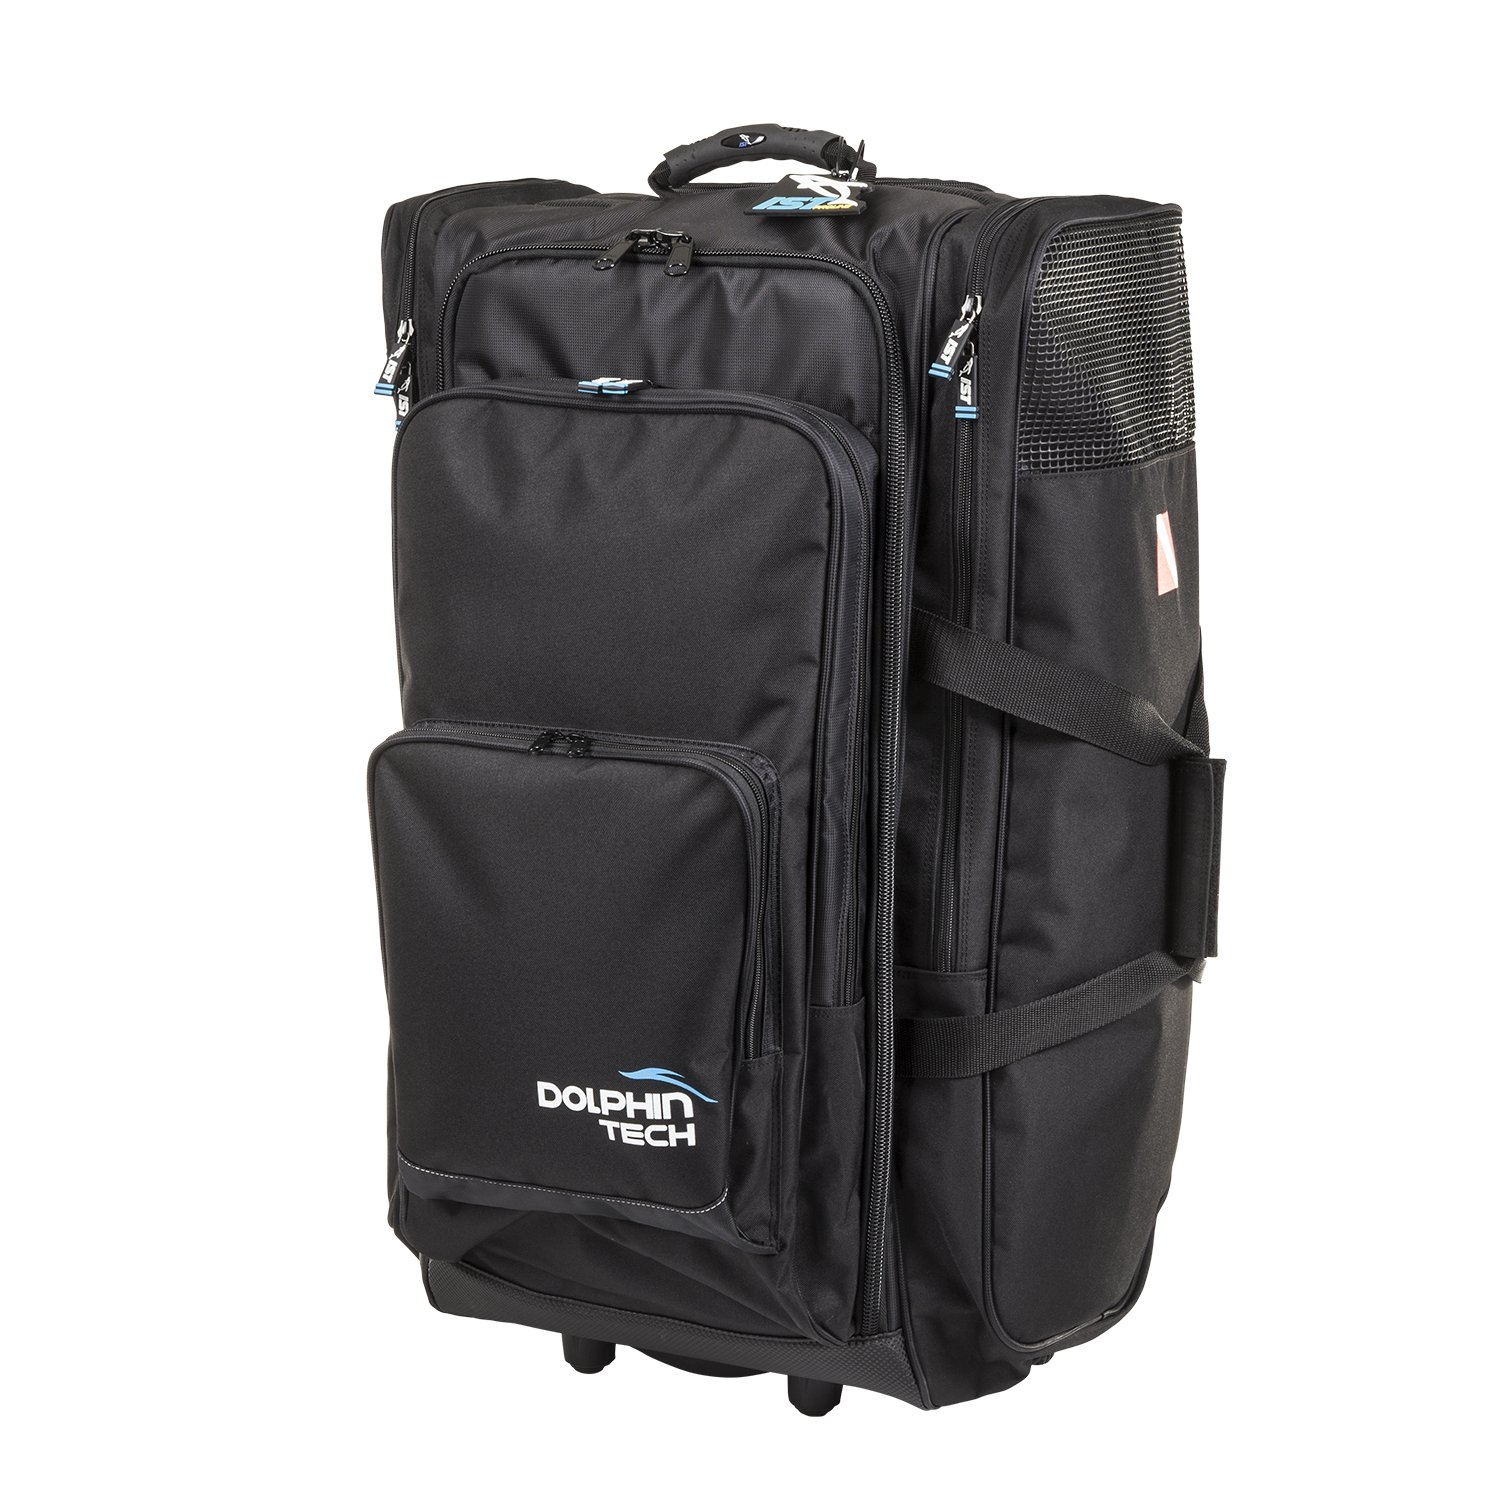 Dolphin Tech by IST BG03 Roller Backpack